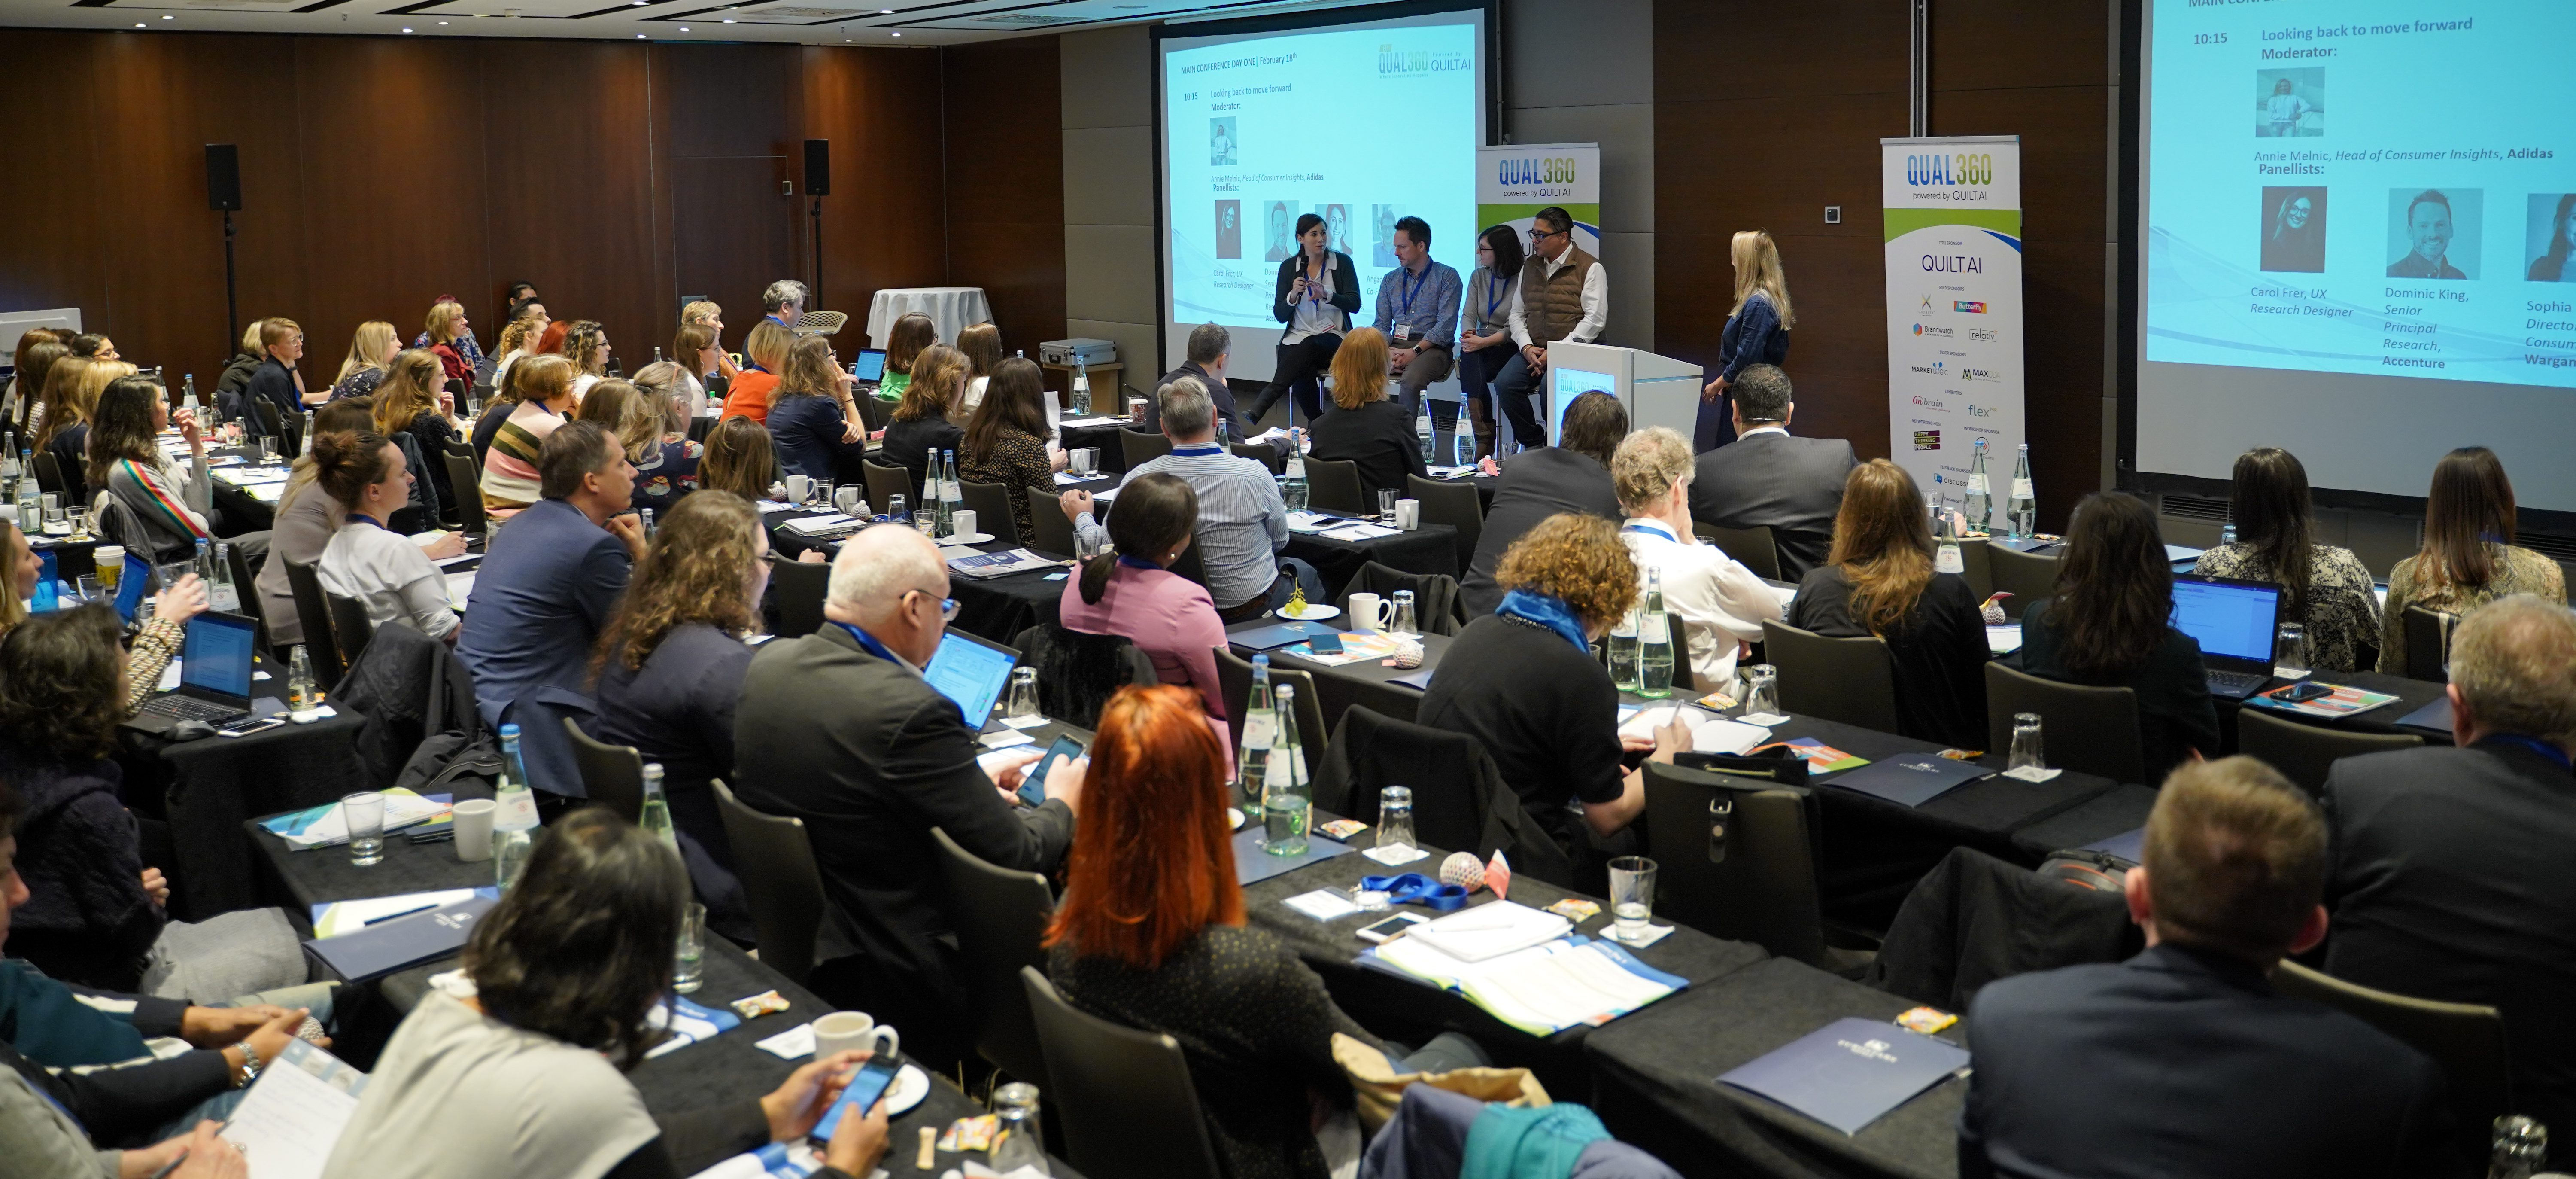 Qual360 Europe:  Summaries and Reviews